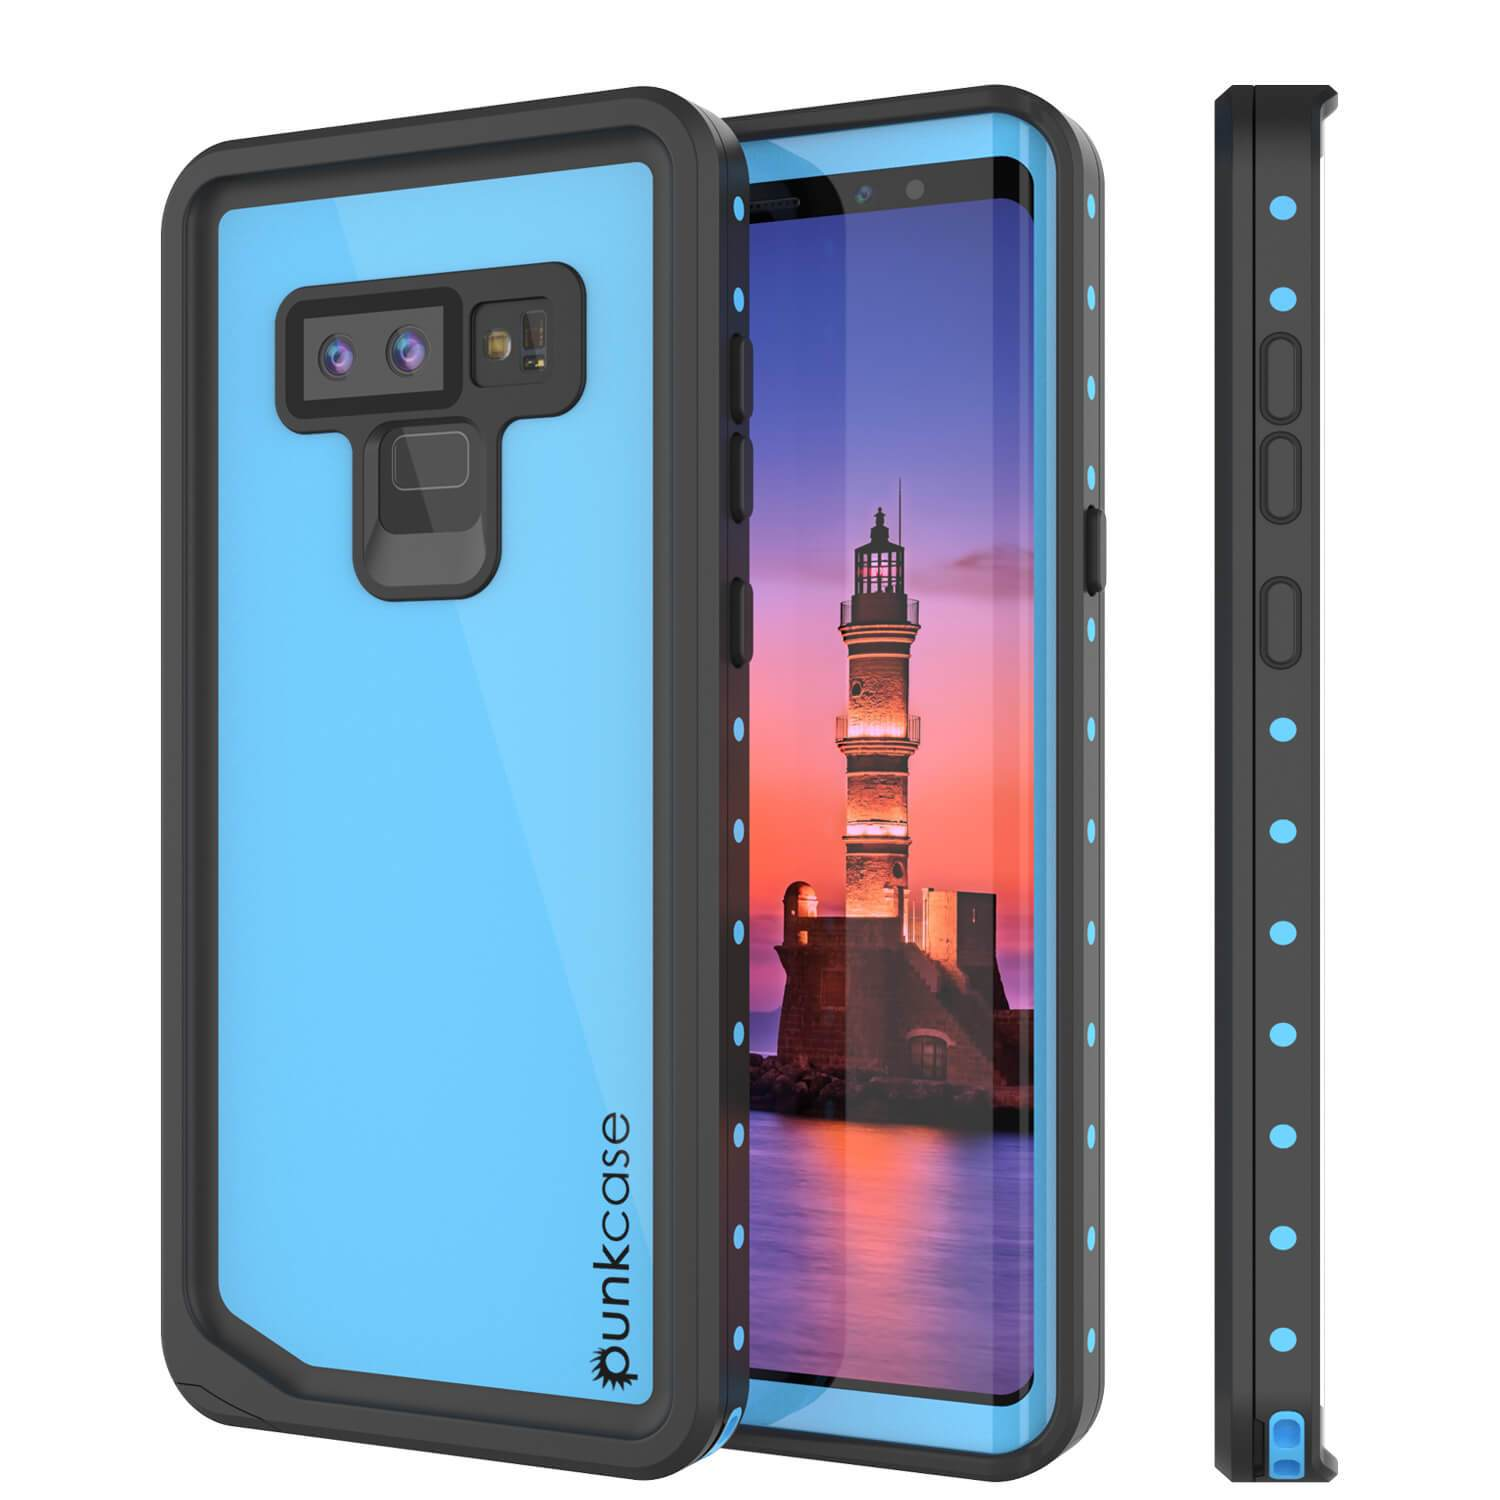 Galaxy Note 9 Waterproof PunkCase StudStar [Light Blue] Thin 6.6ft